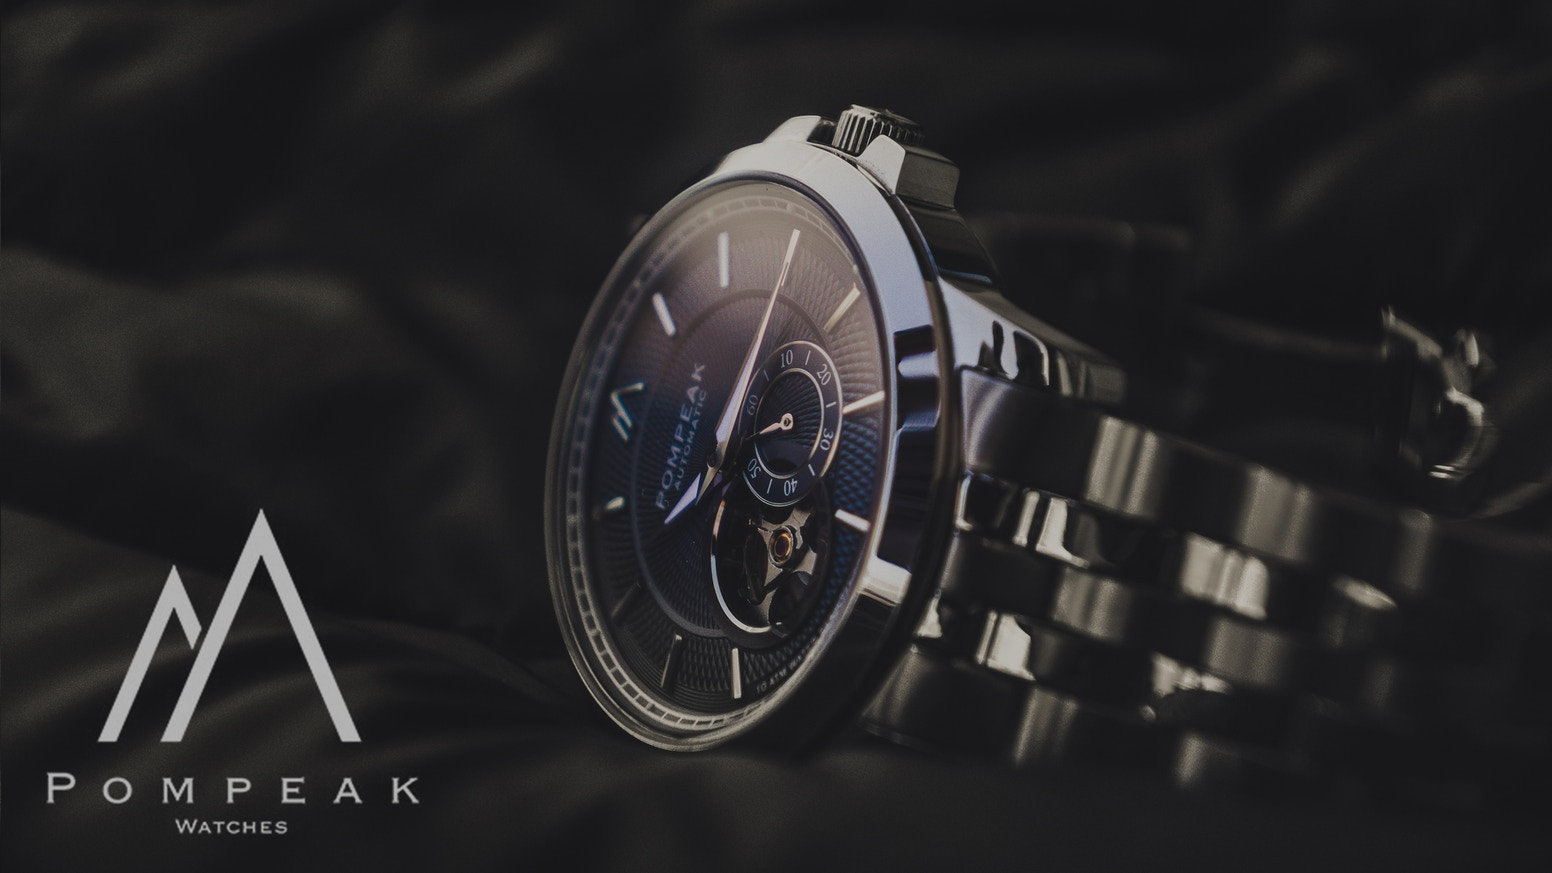 We've designed the watch we want to wear and worked to introduce it at the best possible price.